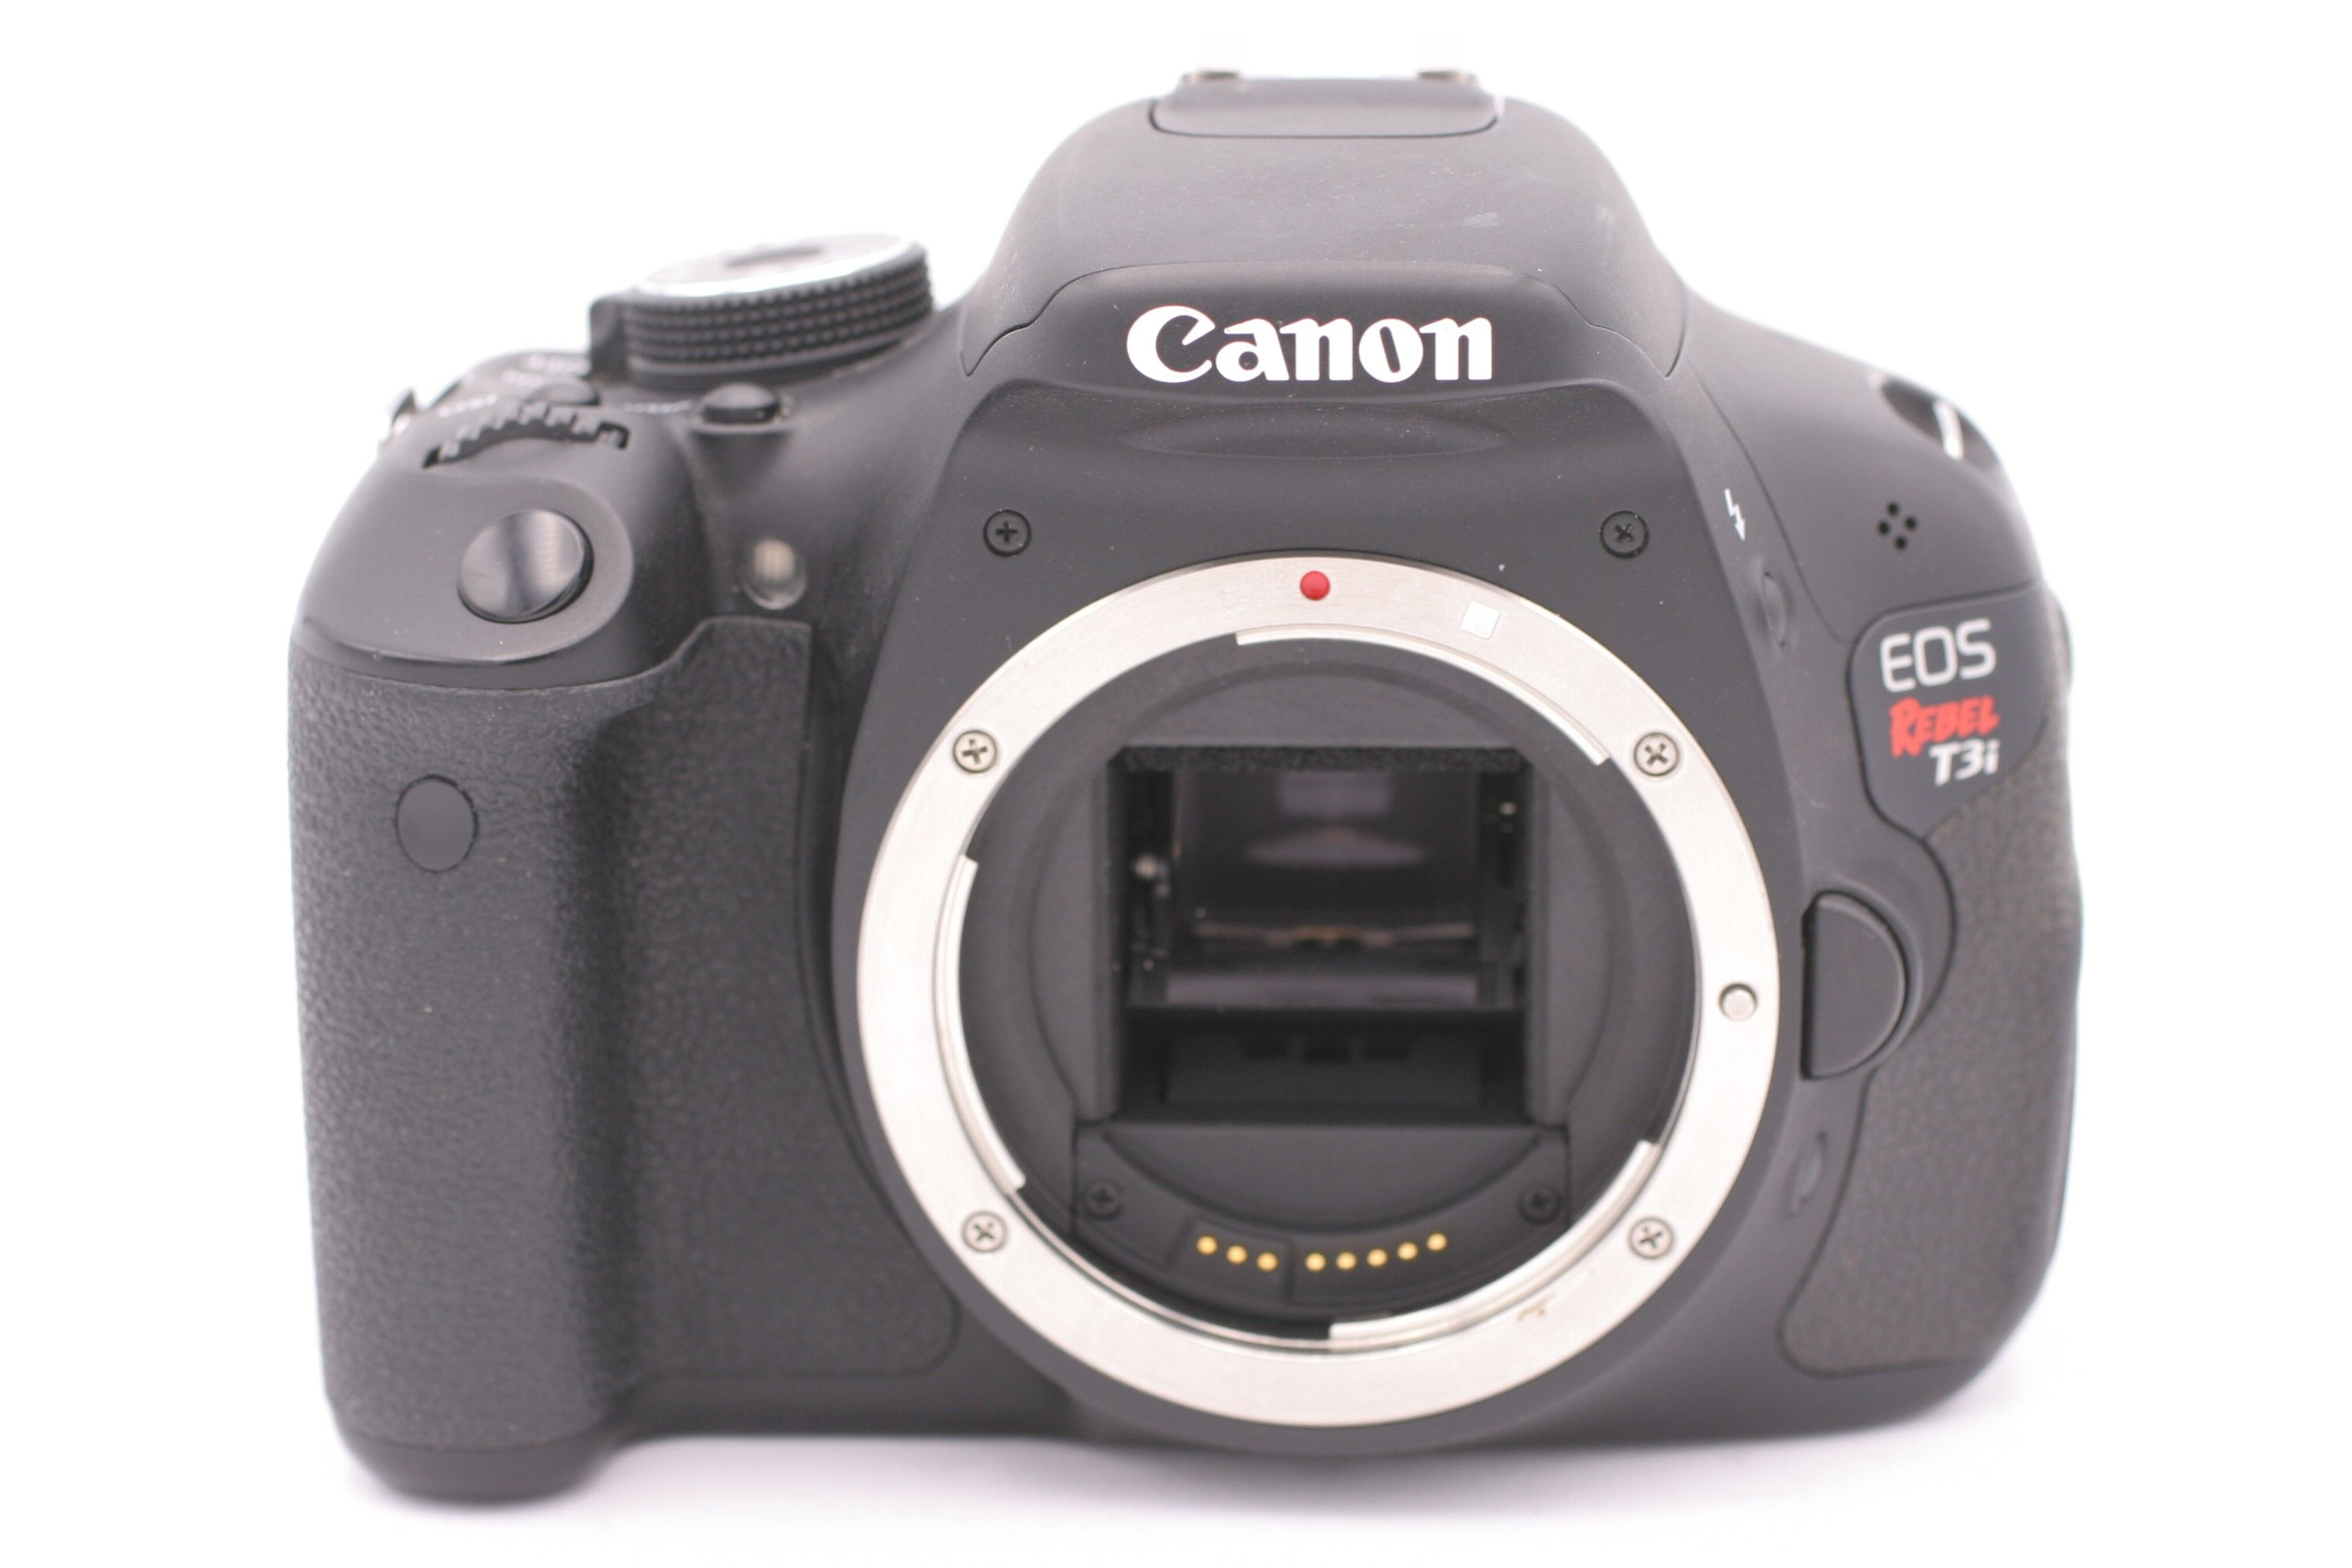 canon eos 600d eos rebel t3i 18 0mp digital slr camera shutter rh ebay com canon 600d user manual free download canon eos 600d manual greek